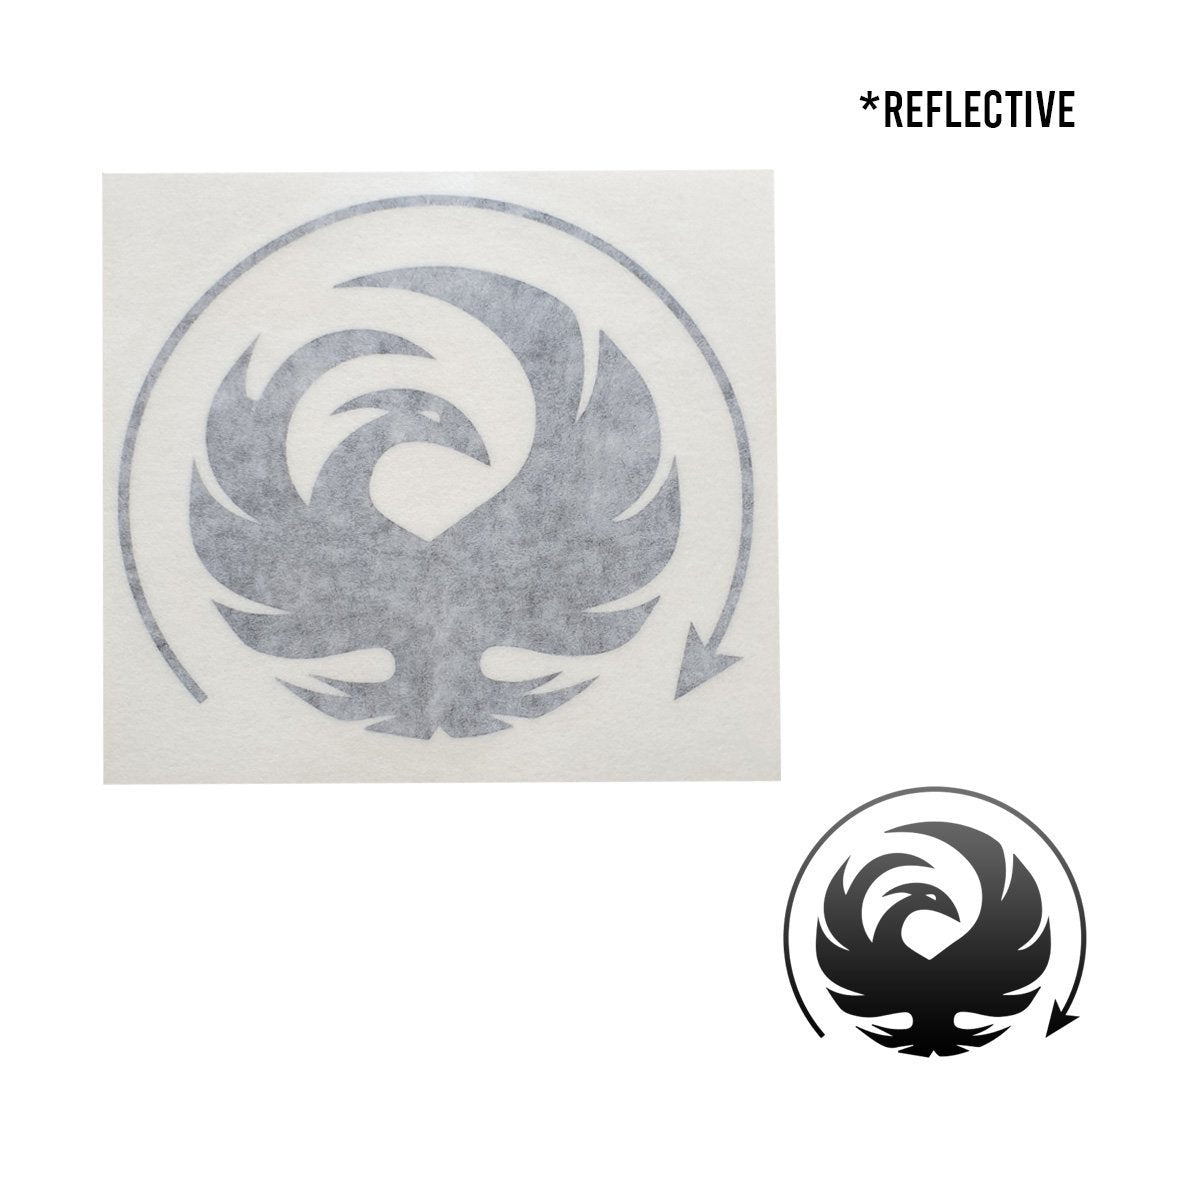 Phoenix Waterproof Die-Cut Decal - Flying Solo Gear Company